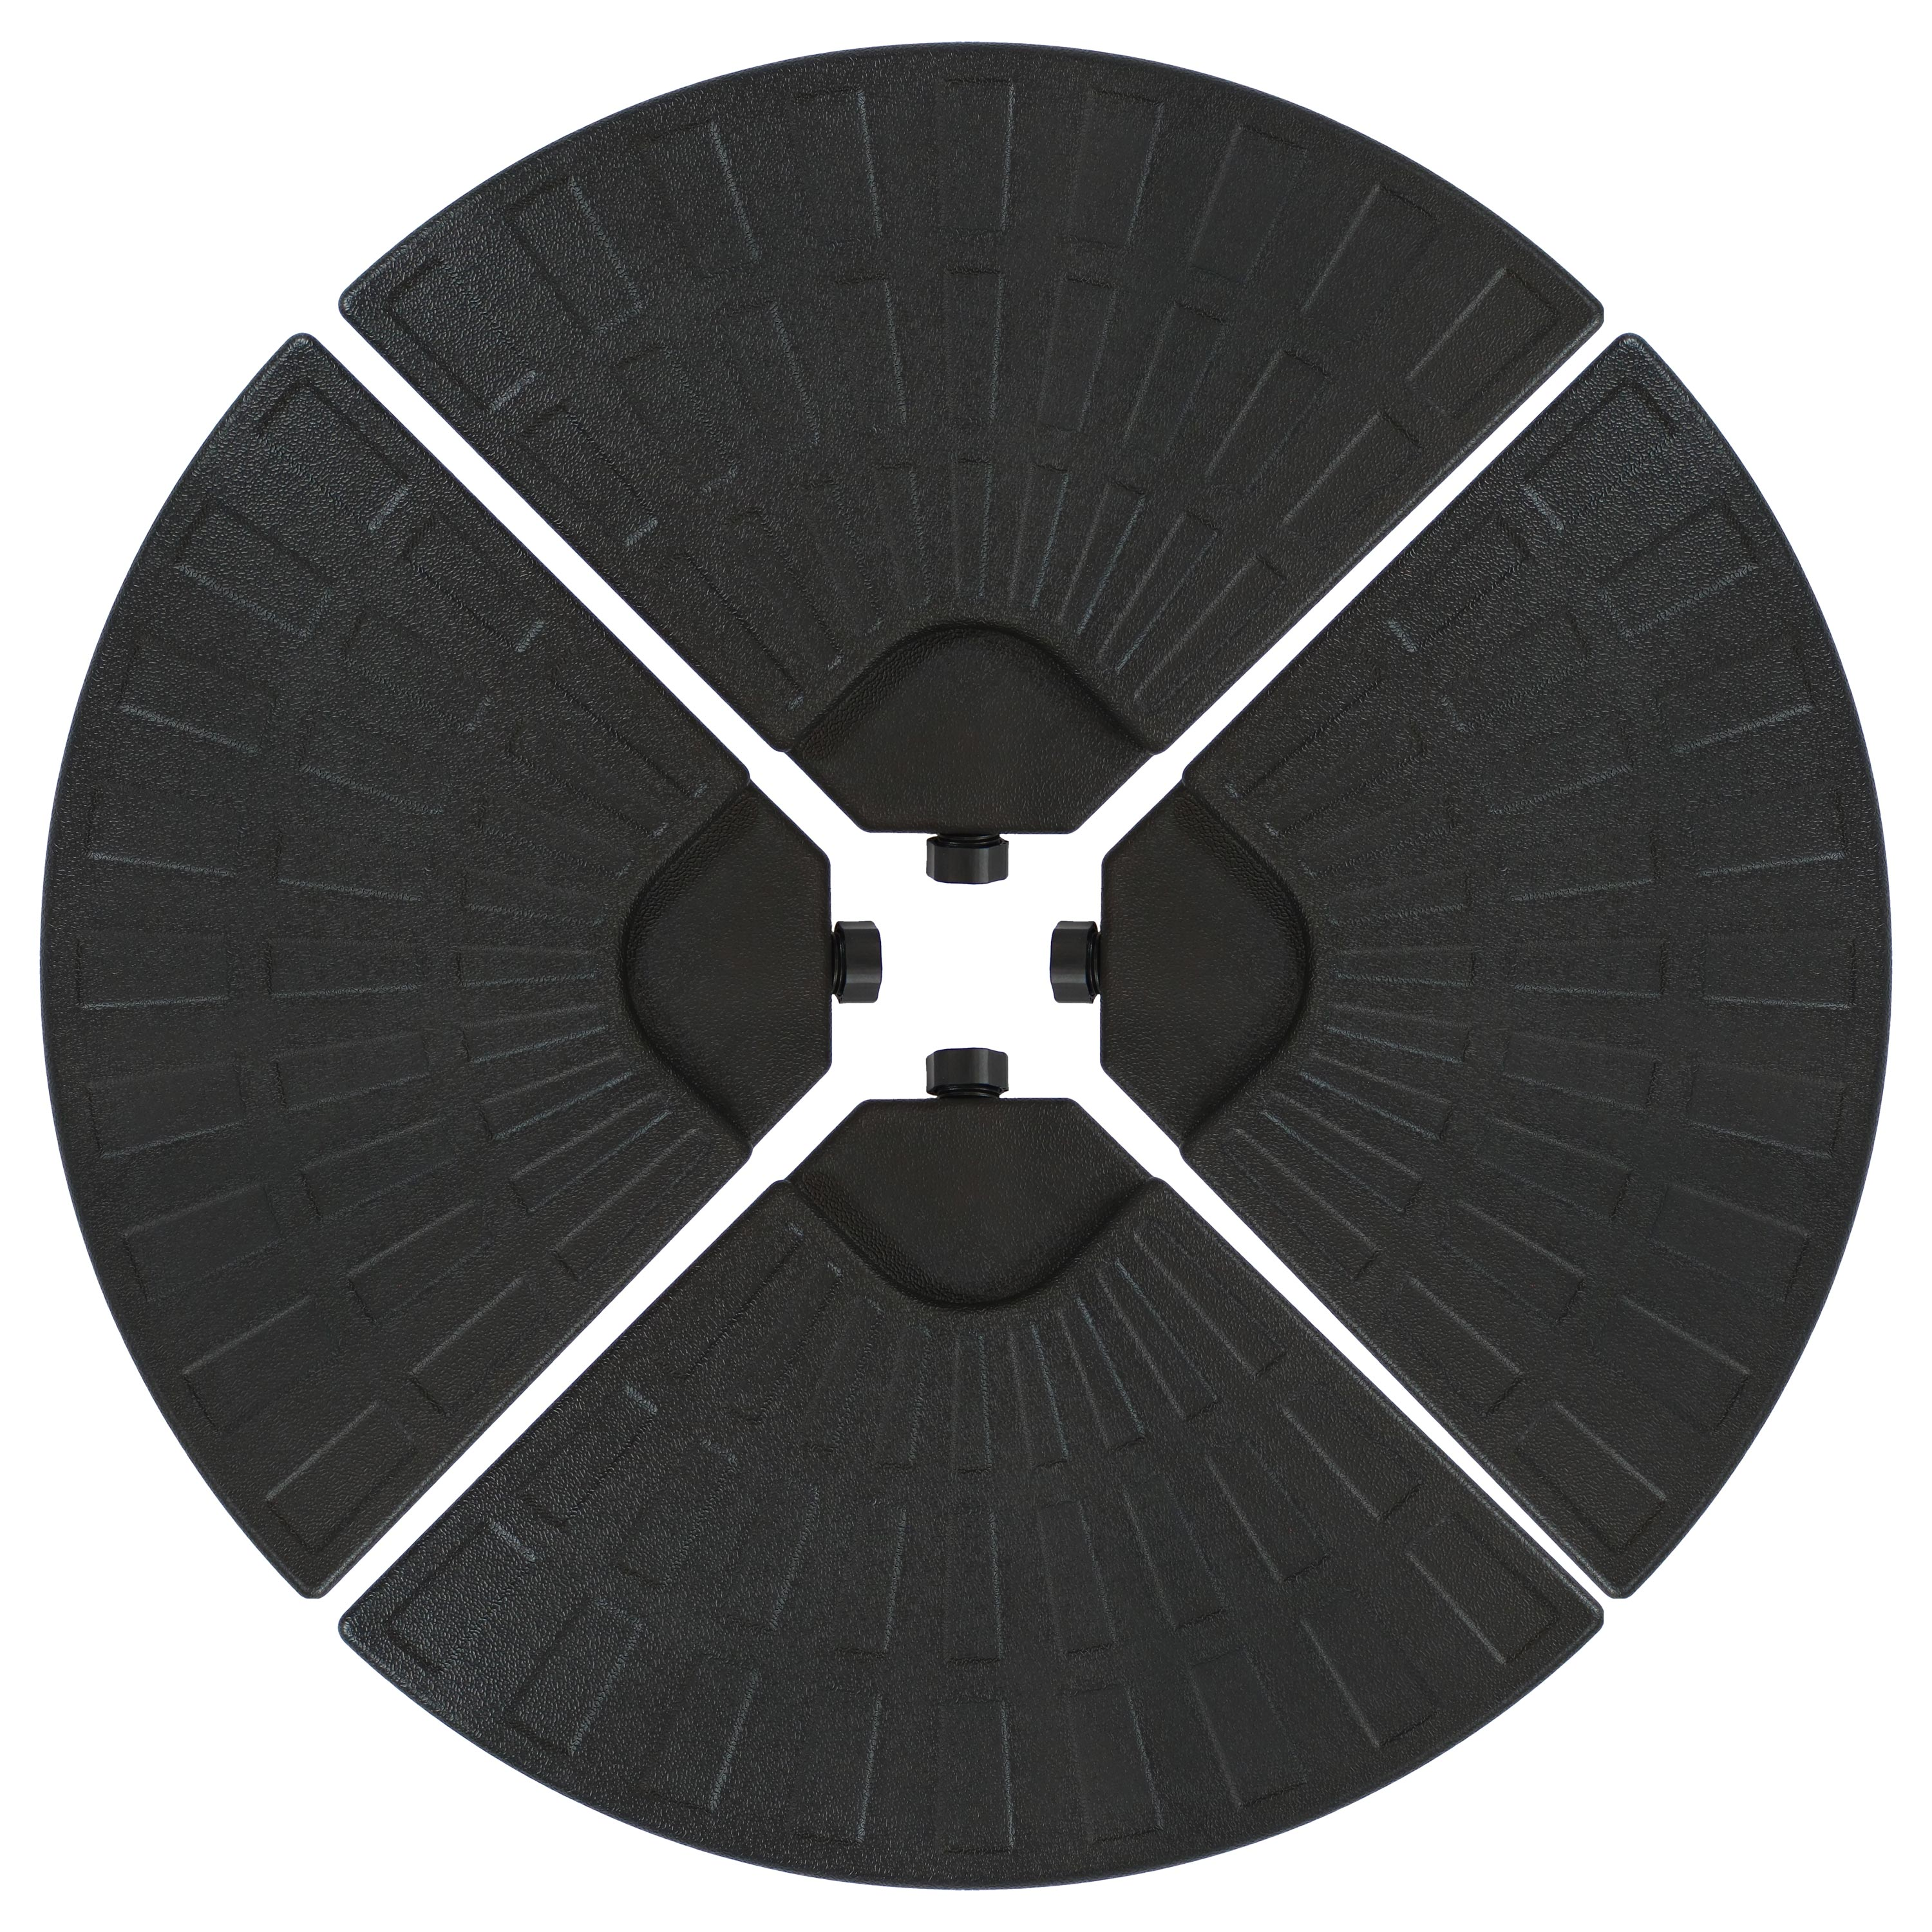 Patio Umbrella Base Plate Weights Cross Style Bases Black Photo